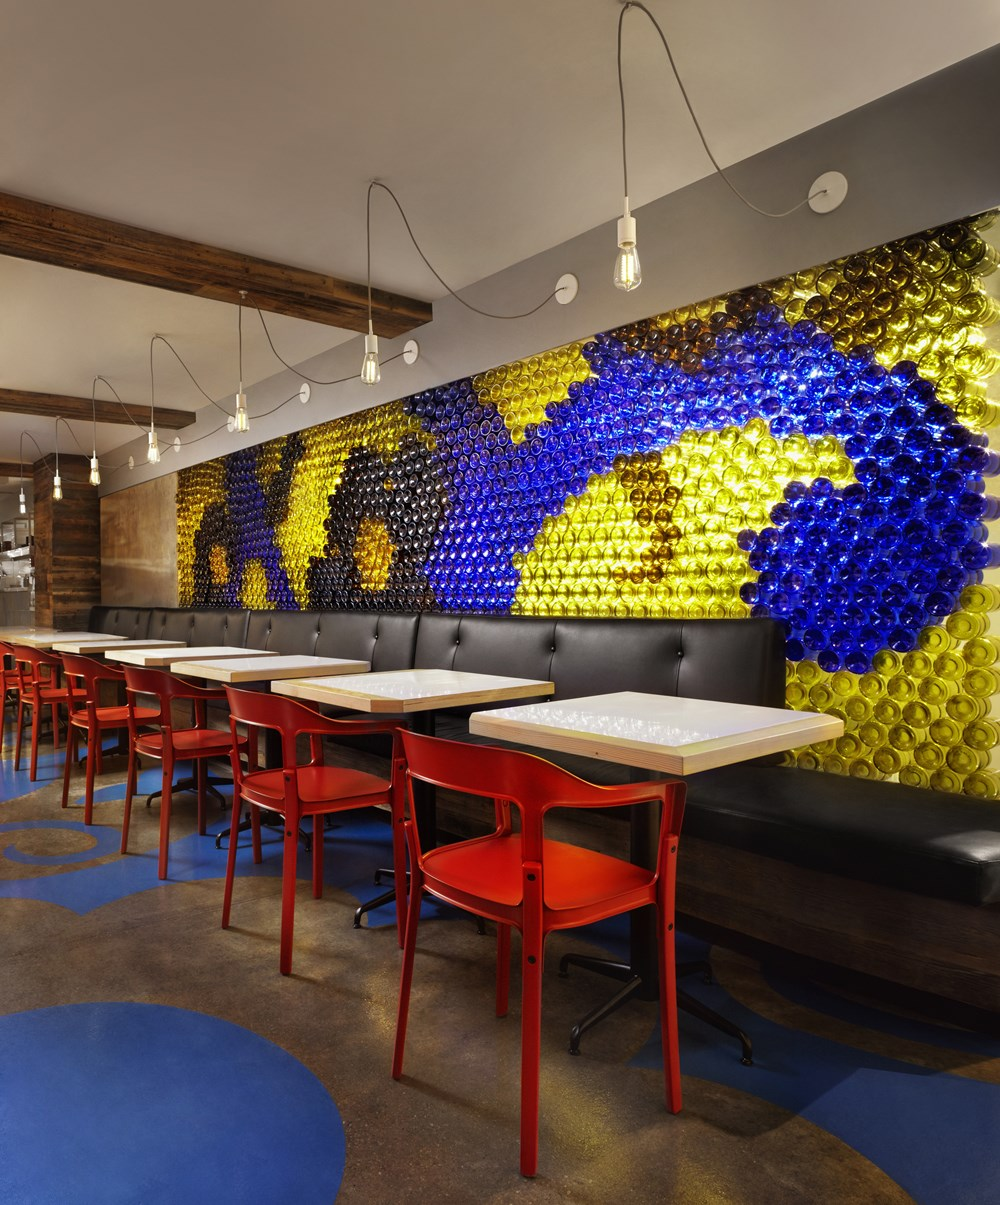 Refin tiles Perfect Accent for Gaudi-inspired Restaurant 06